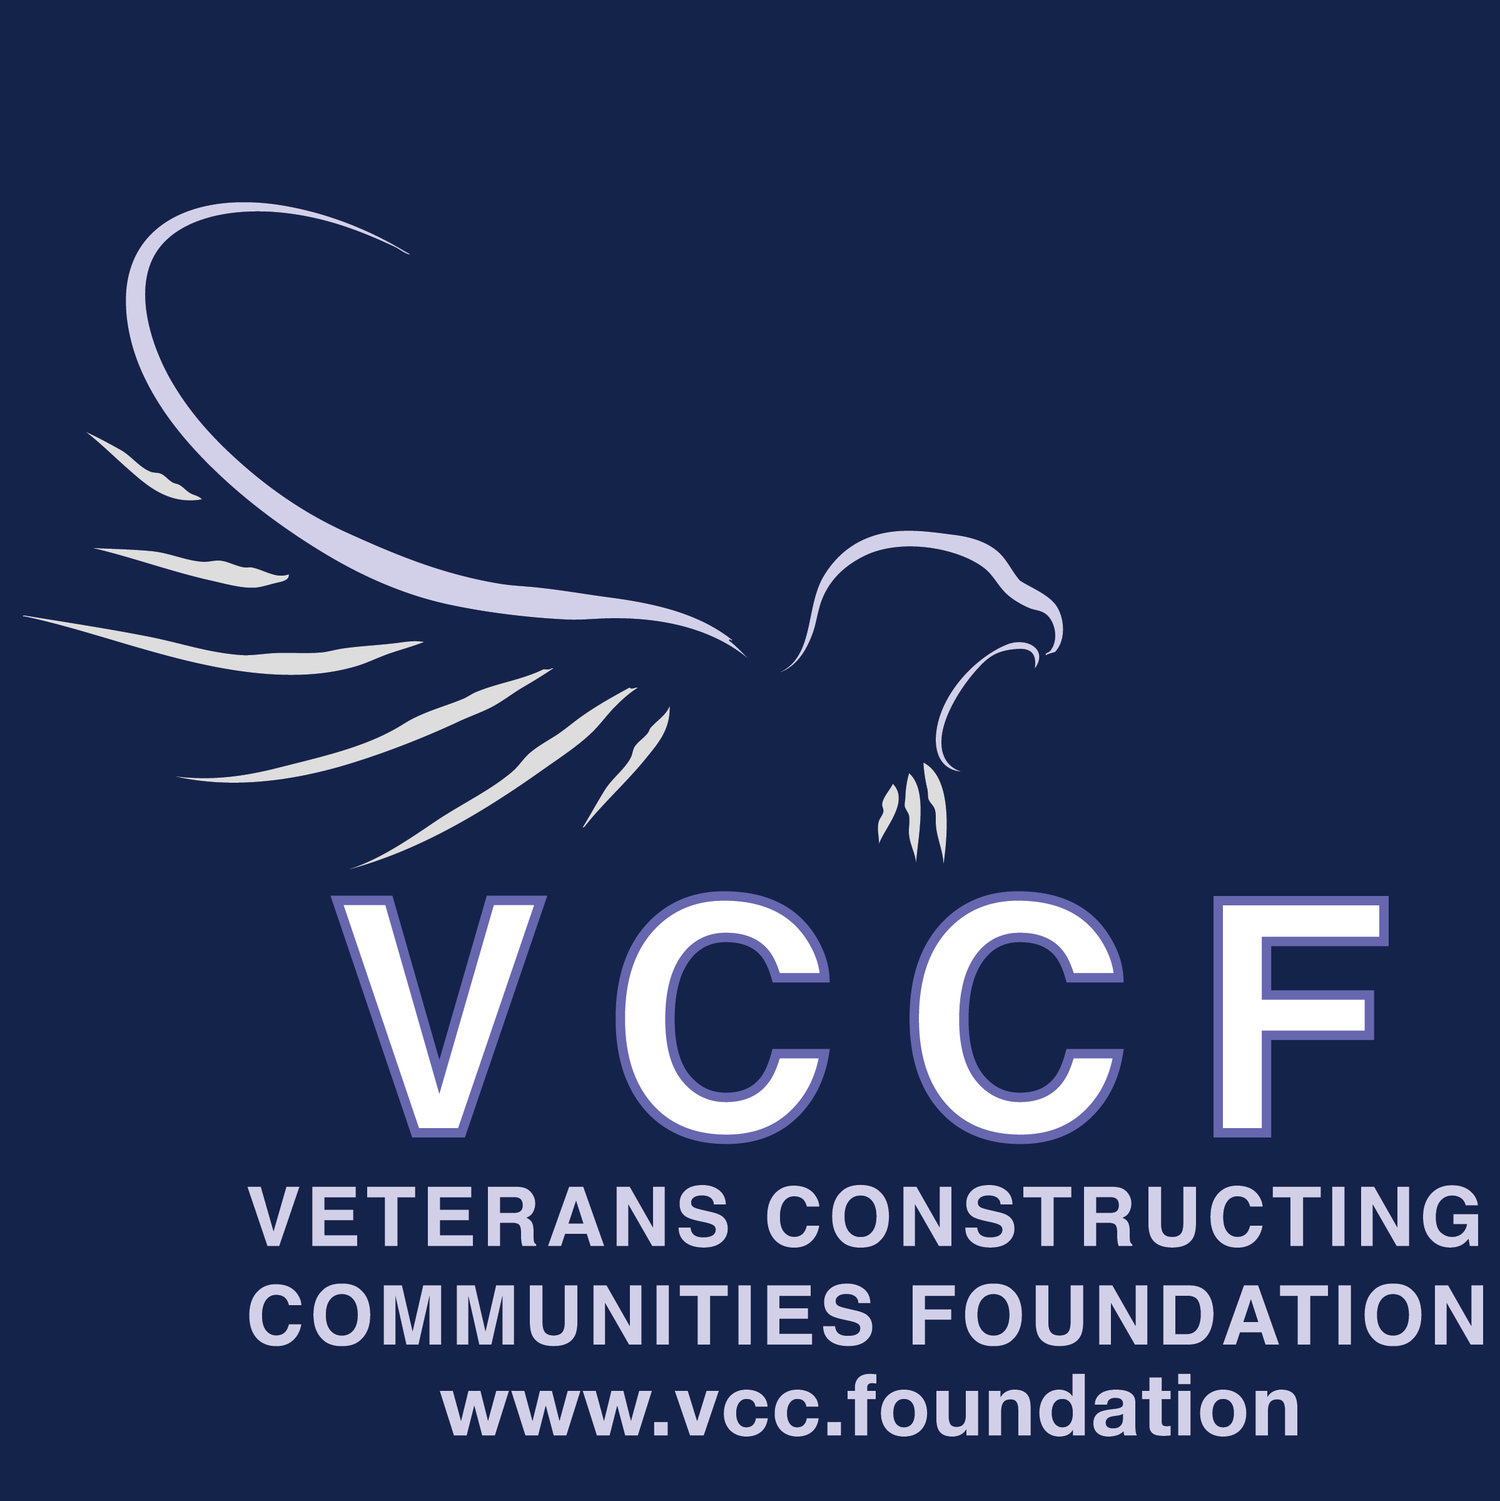 Veterans Constructing Communities Foundation